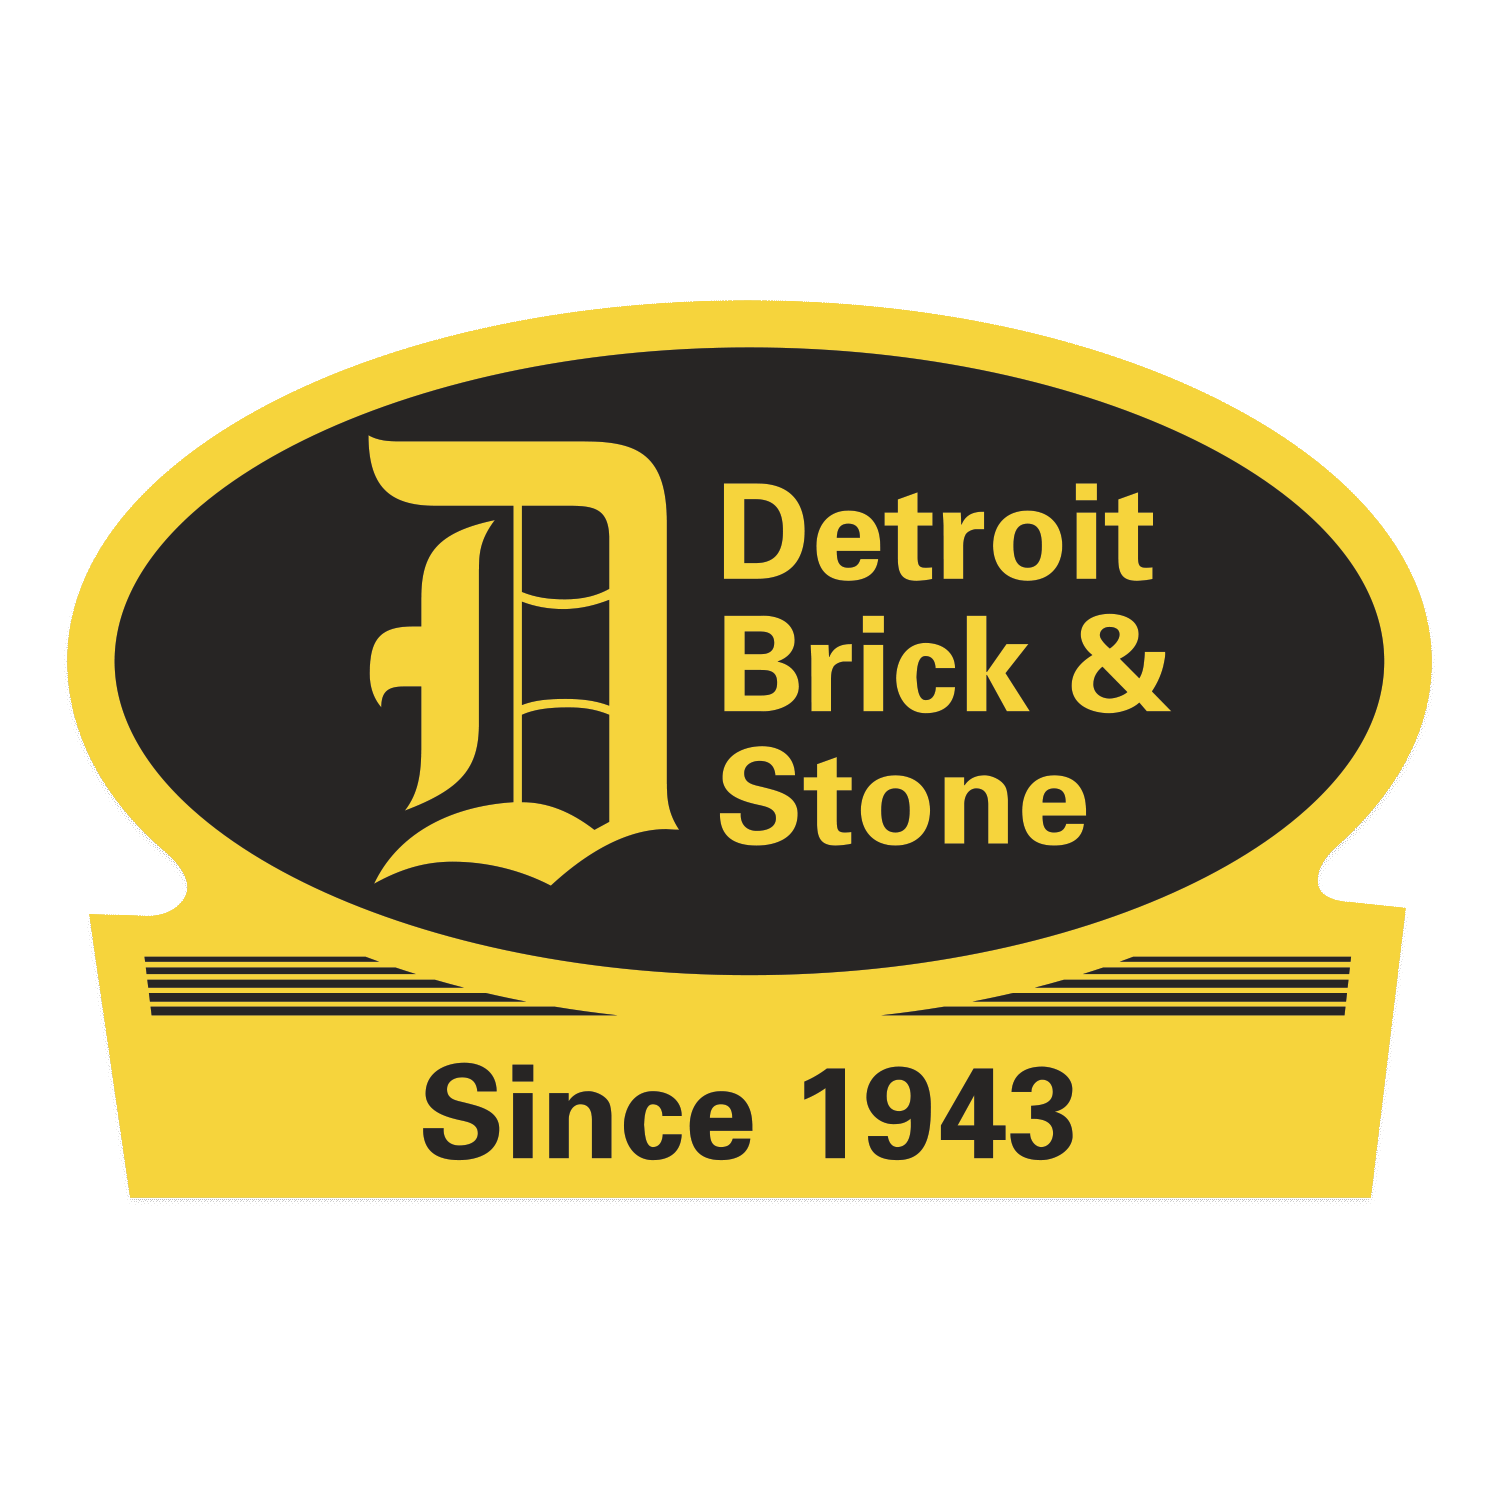 https://www.sswprinting.com/images/products_gallery_images/13602_Detroit-Brick-and-Stone_hi-res.png